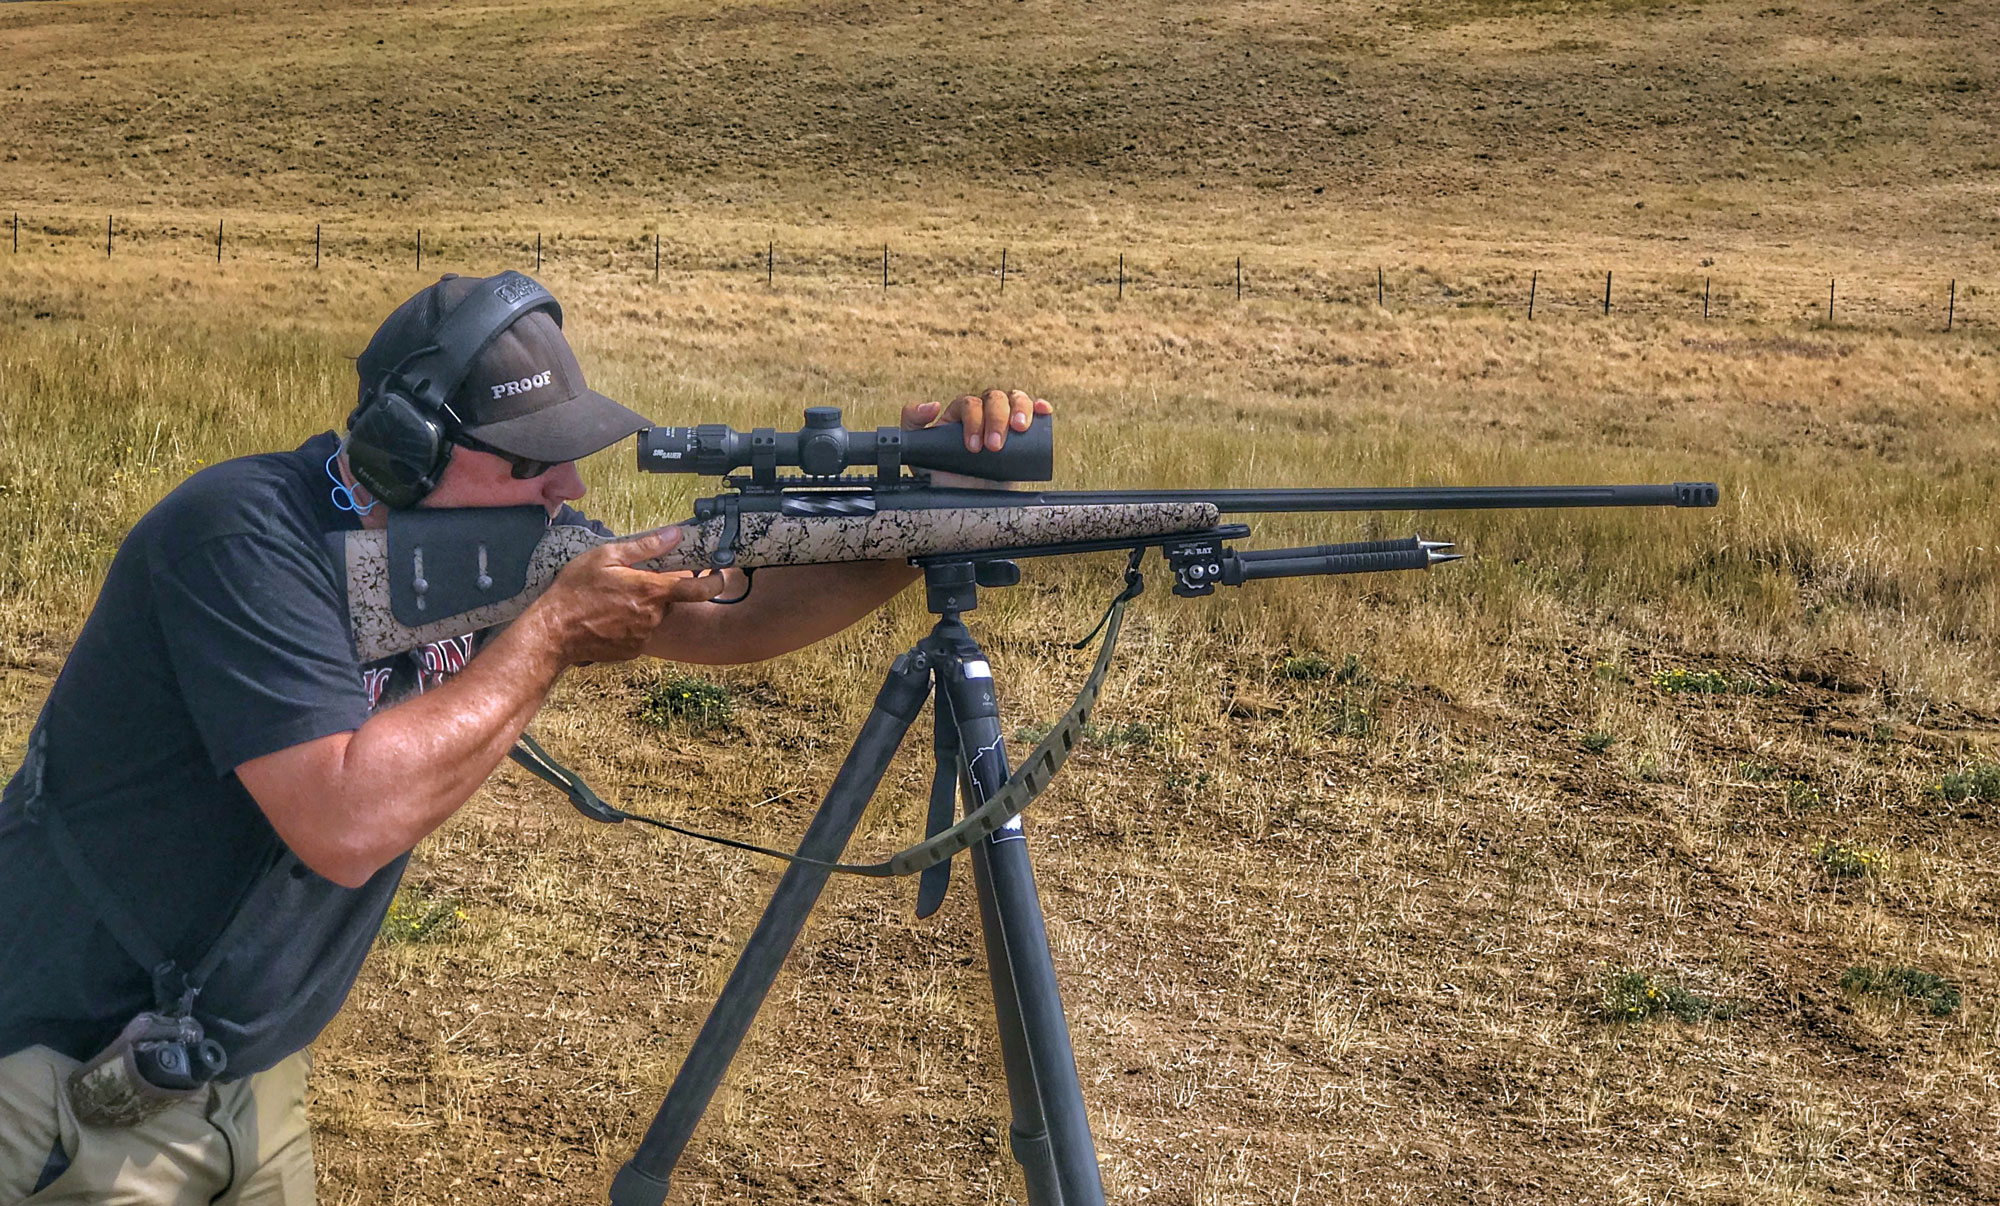 Darrin Cooper shooting a rifle with the Sig Sauer BDX riflescope.